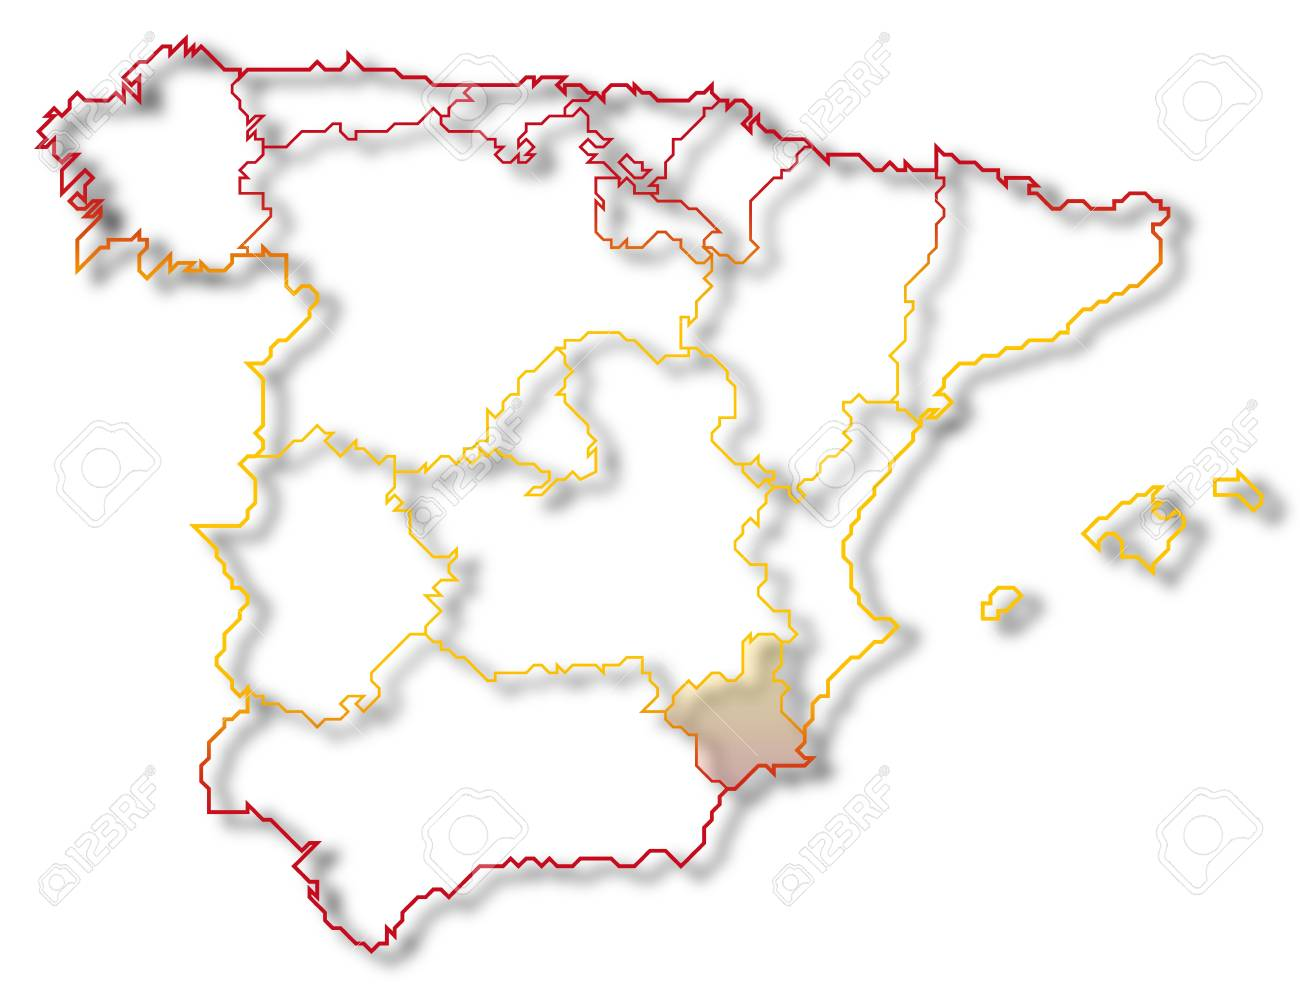 Map Of Spain With Regions.Political Map Of Spain With The Several Regions Where Murcia